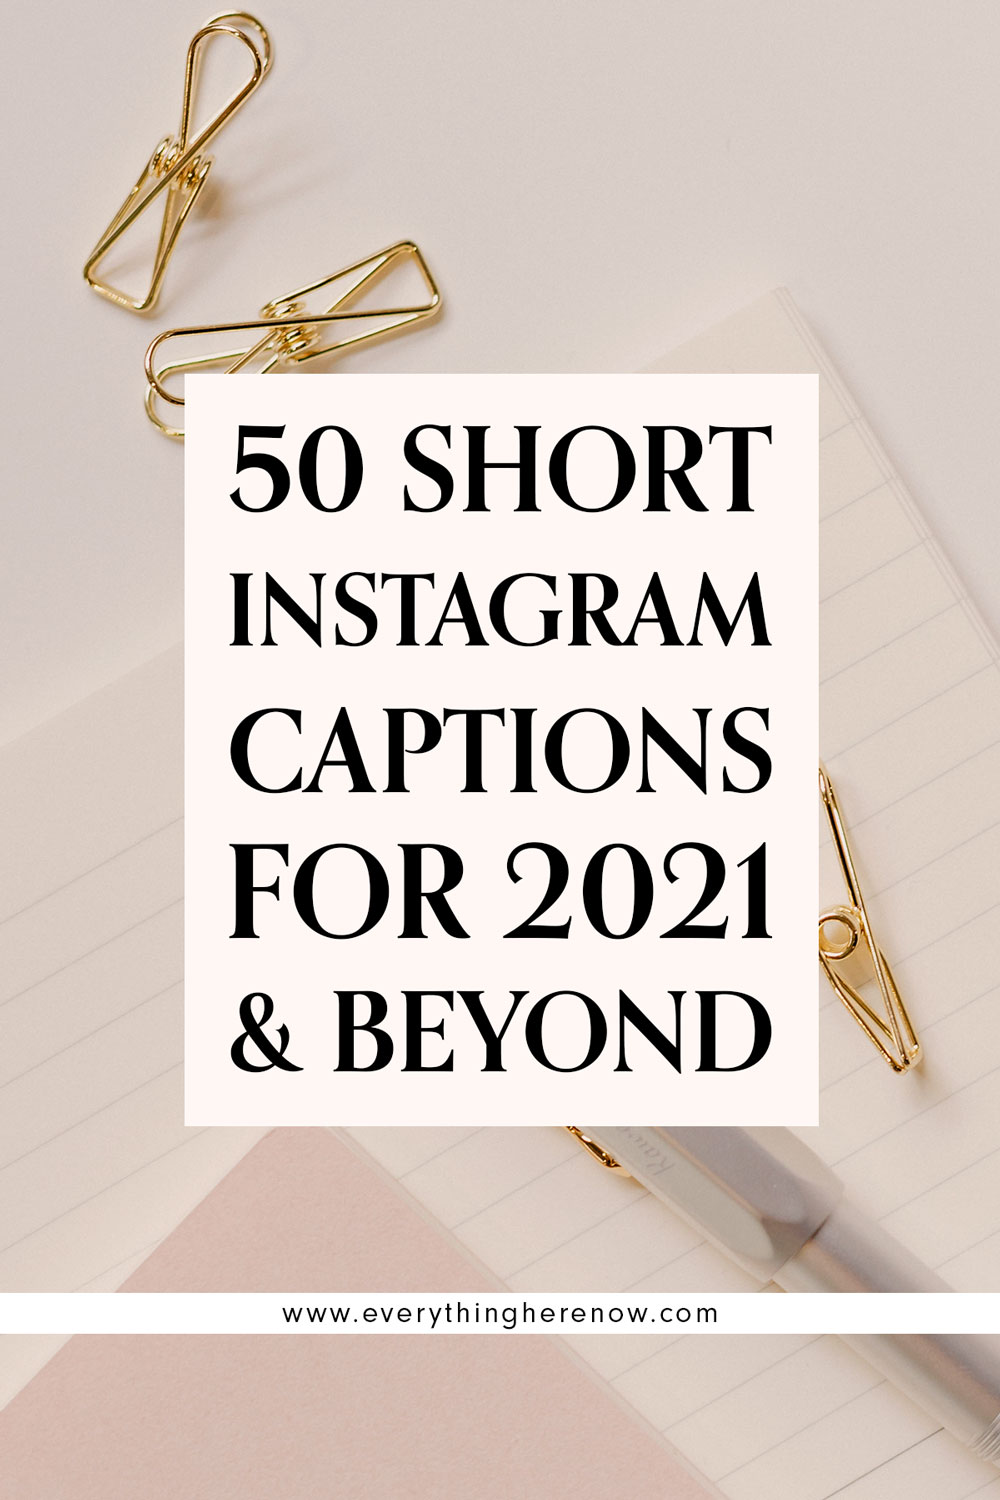 Pinterest image for 50 Short Instagram Captions for 2021 & Beyond